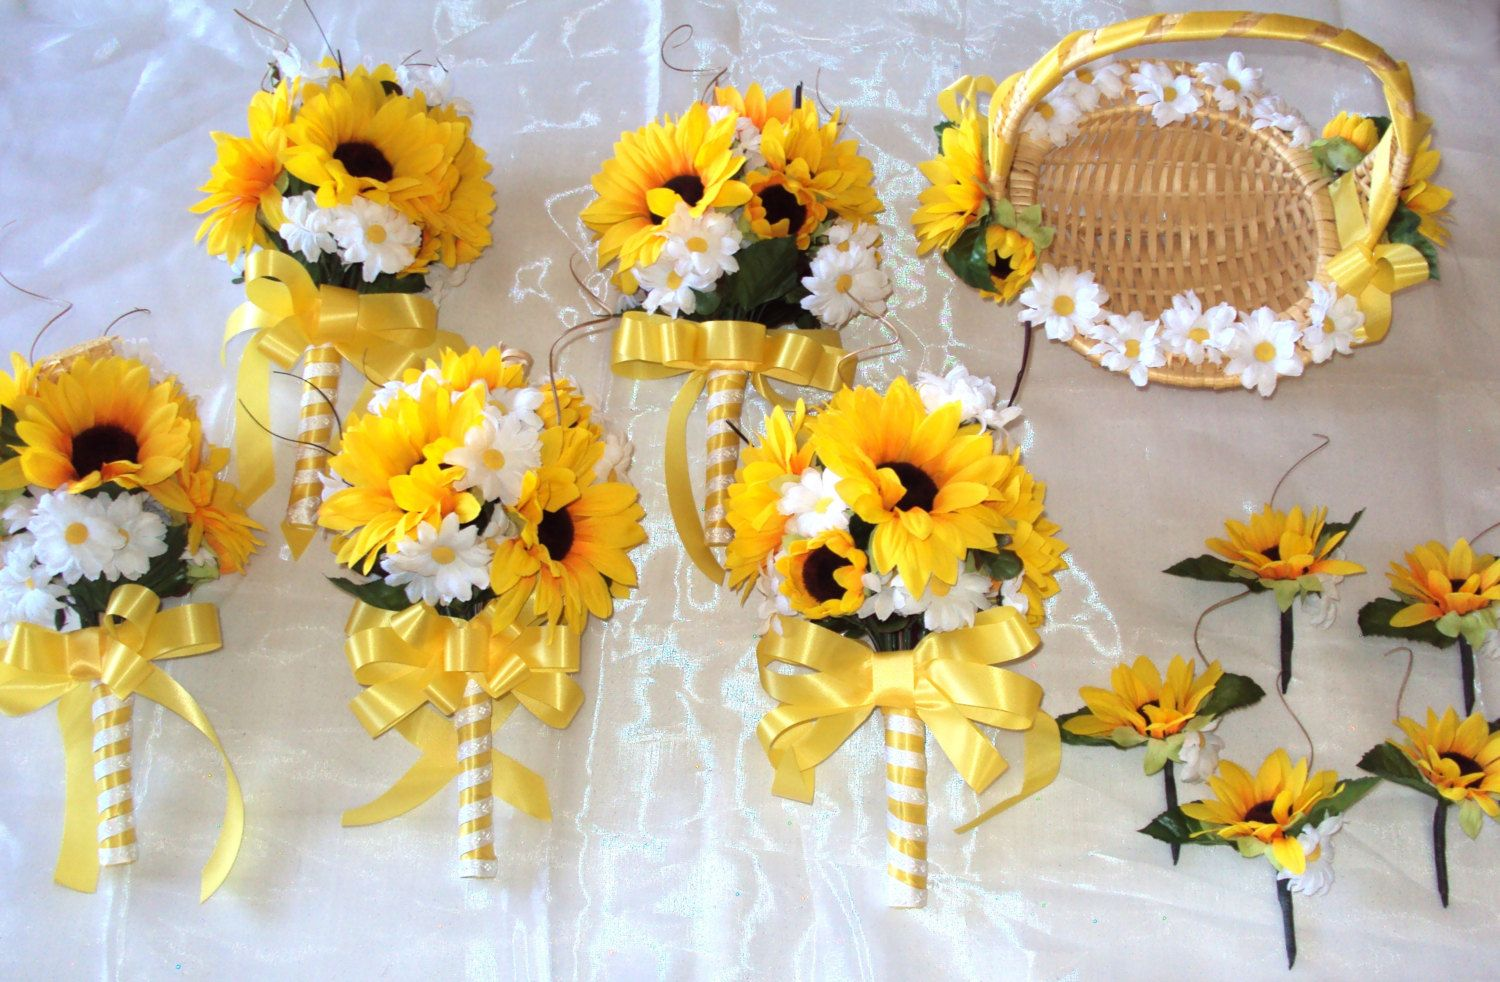 Wedding bouquets of sunflowers  Wedding Bouquet Set  Yellow Sunflower and White Daisy Country